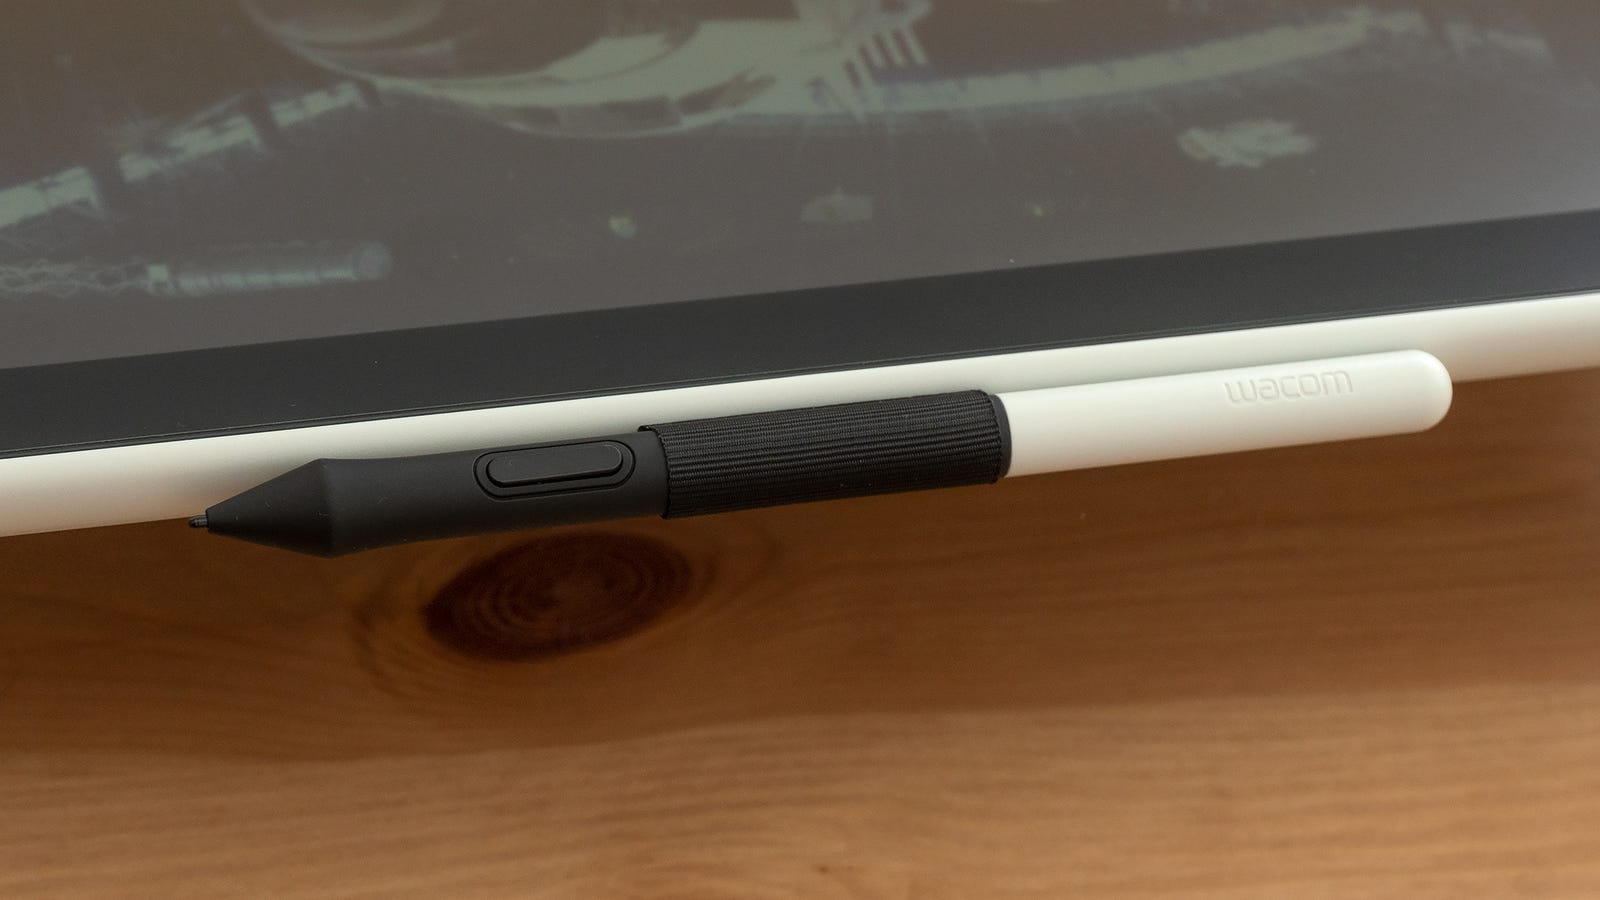 A fabric loop for securing the stylus is basic, but it gets the job done.